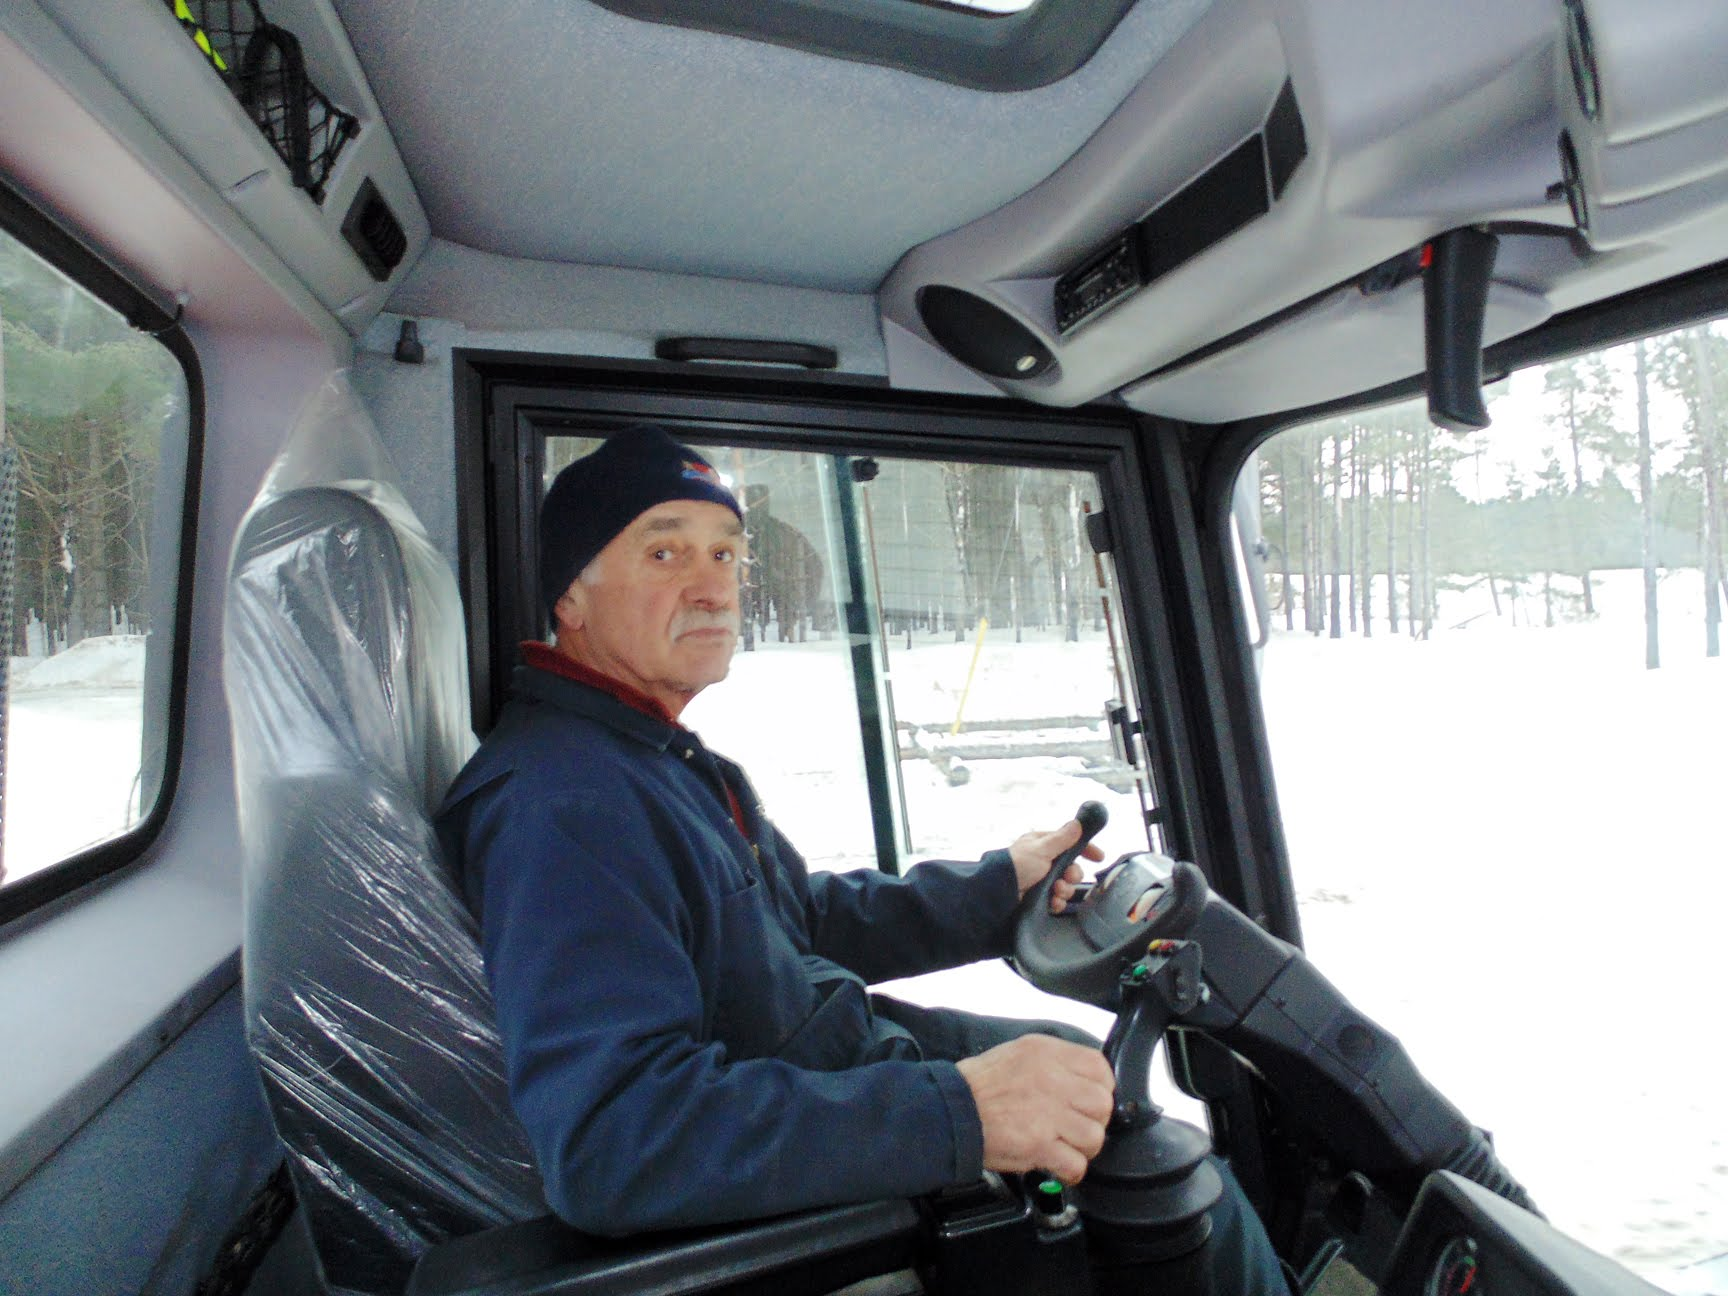 Sawmill Nordic Centre - Fred in cab of PistenBully groomer